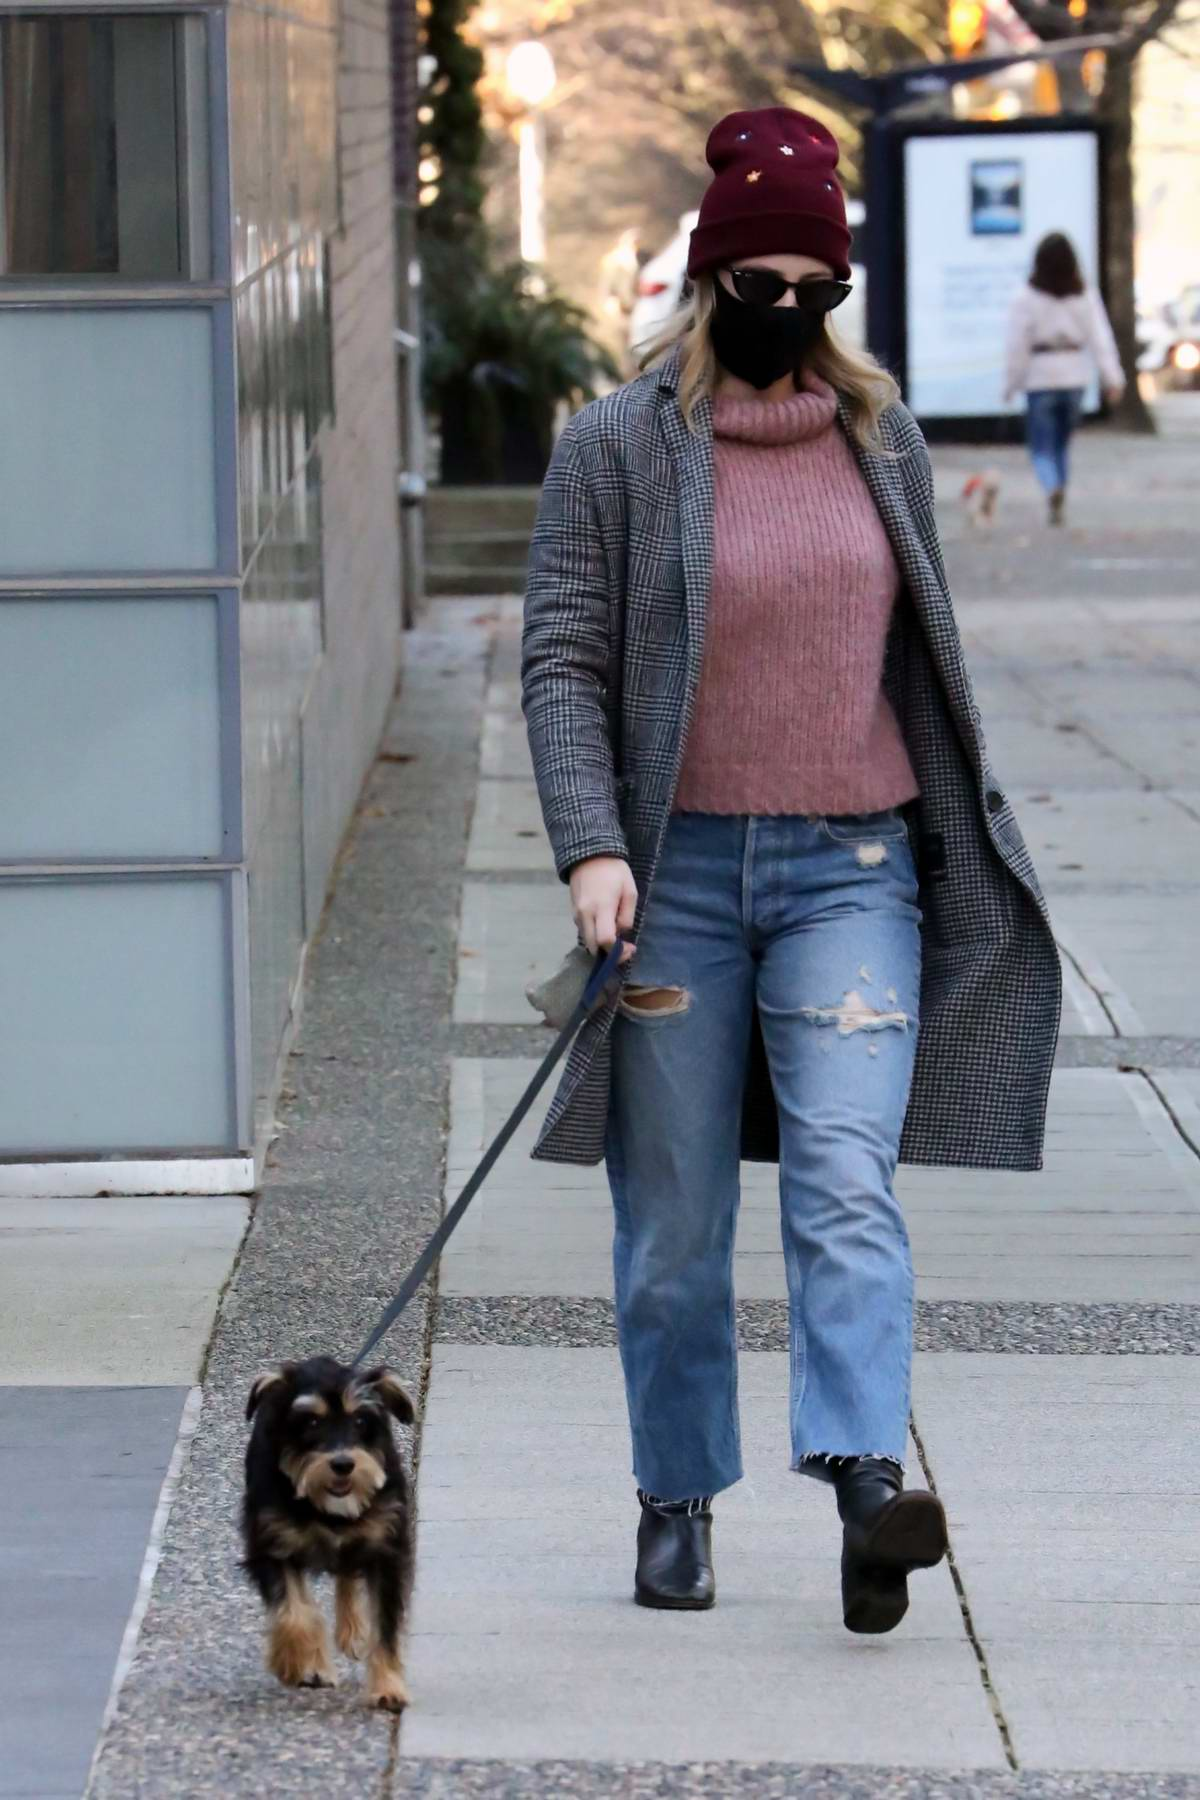 Lili Reinhart looks cozy in a turtleneck with a coat while walking her dog in Vancouver, Canada